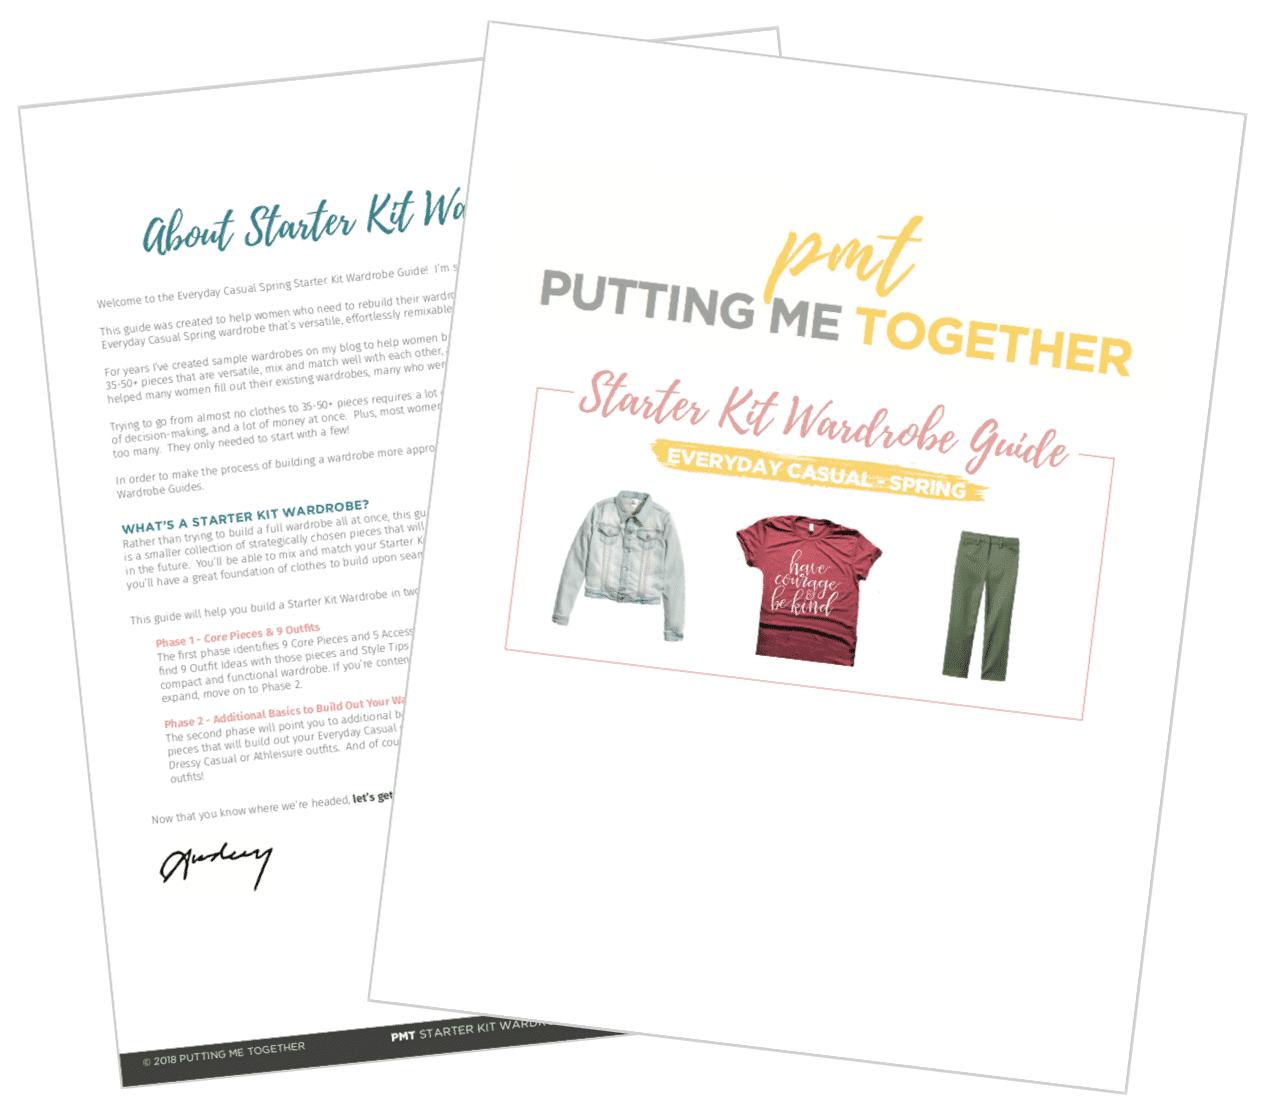 c45e865b0cb Build a Wardrobe From Scratch - Starter Kit Wardrobe Guide - Everyday  Casual Spring